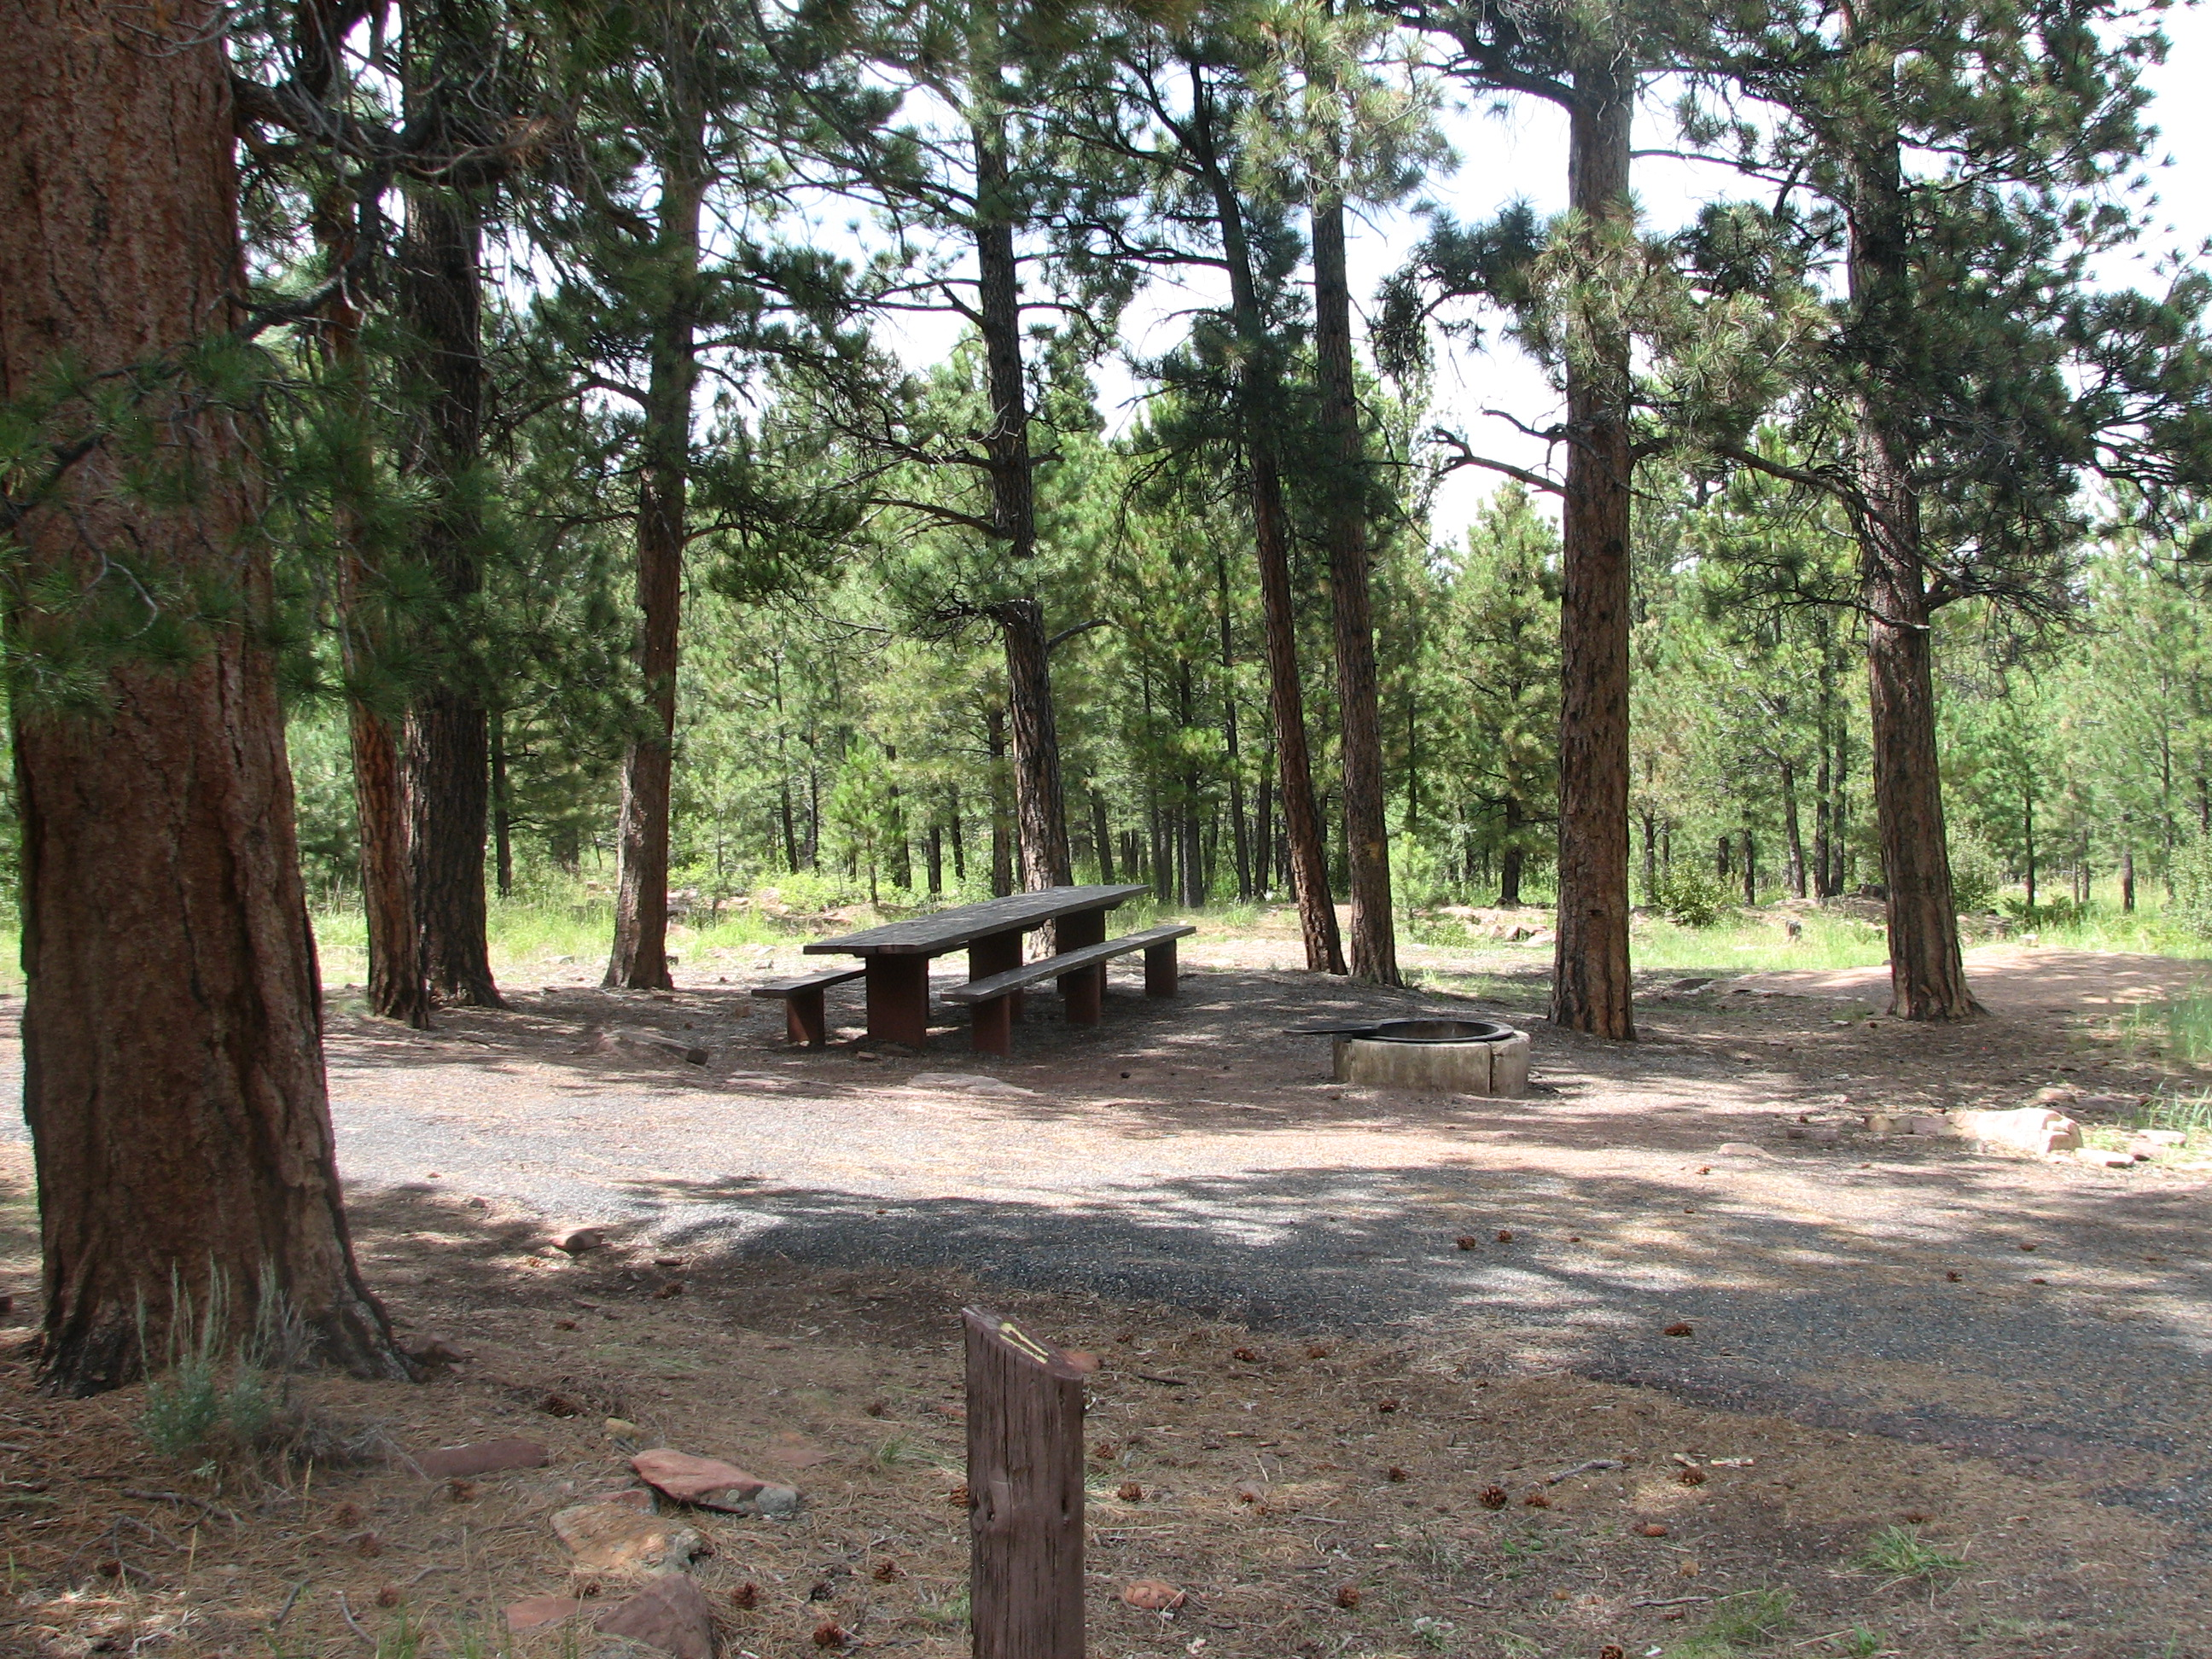 Photo of a site at the Skull Creek Campground.